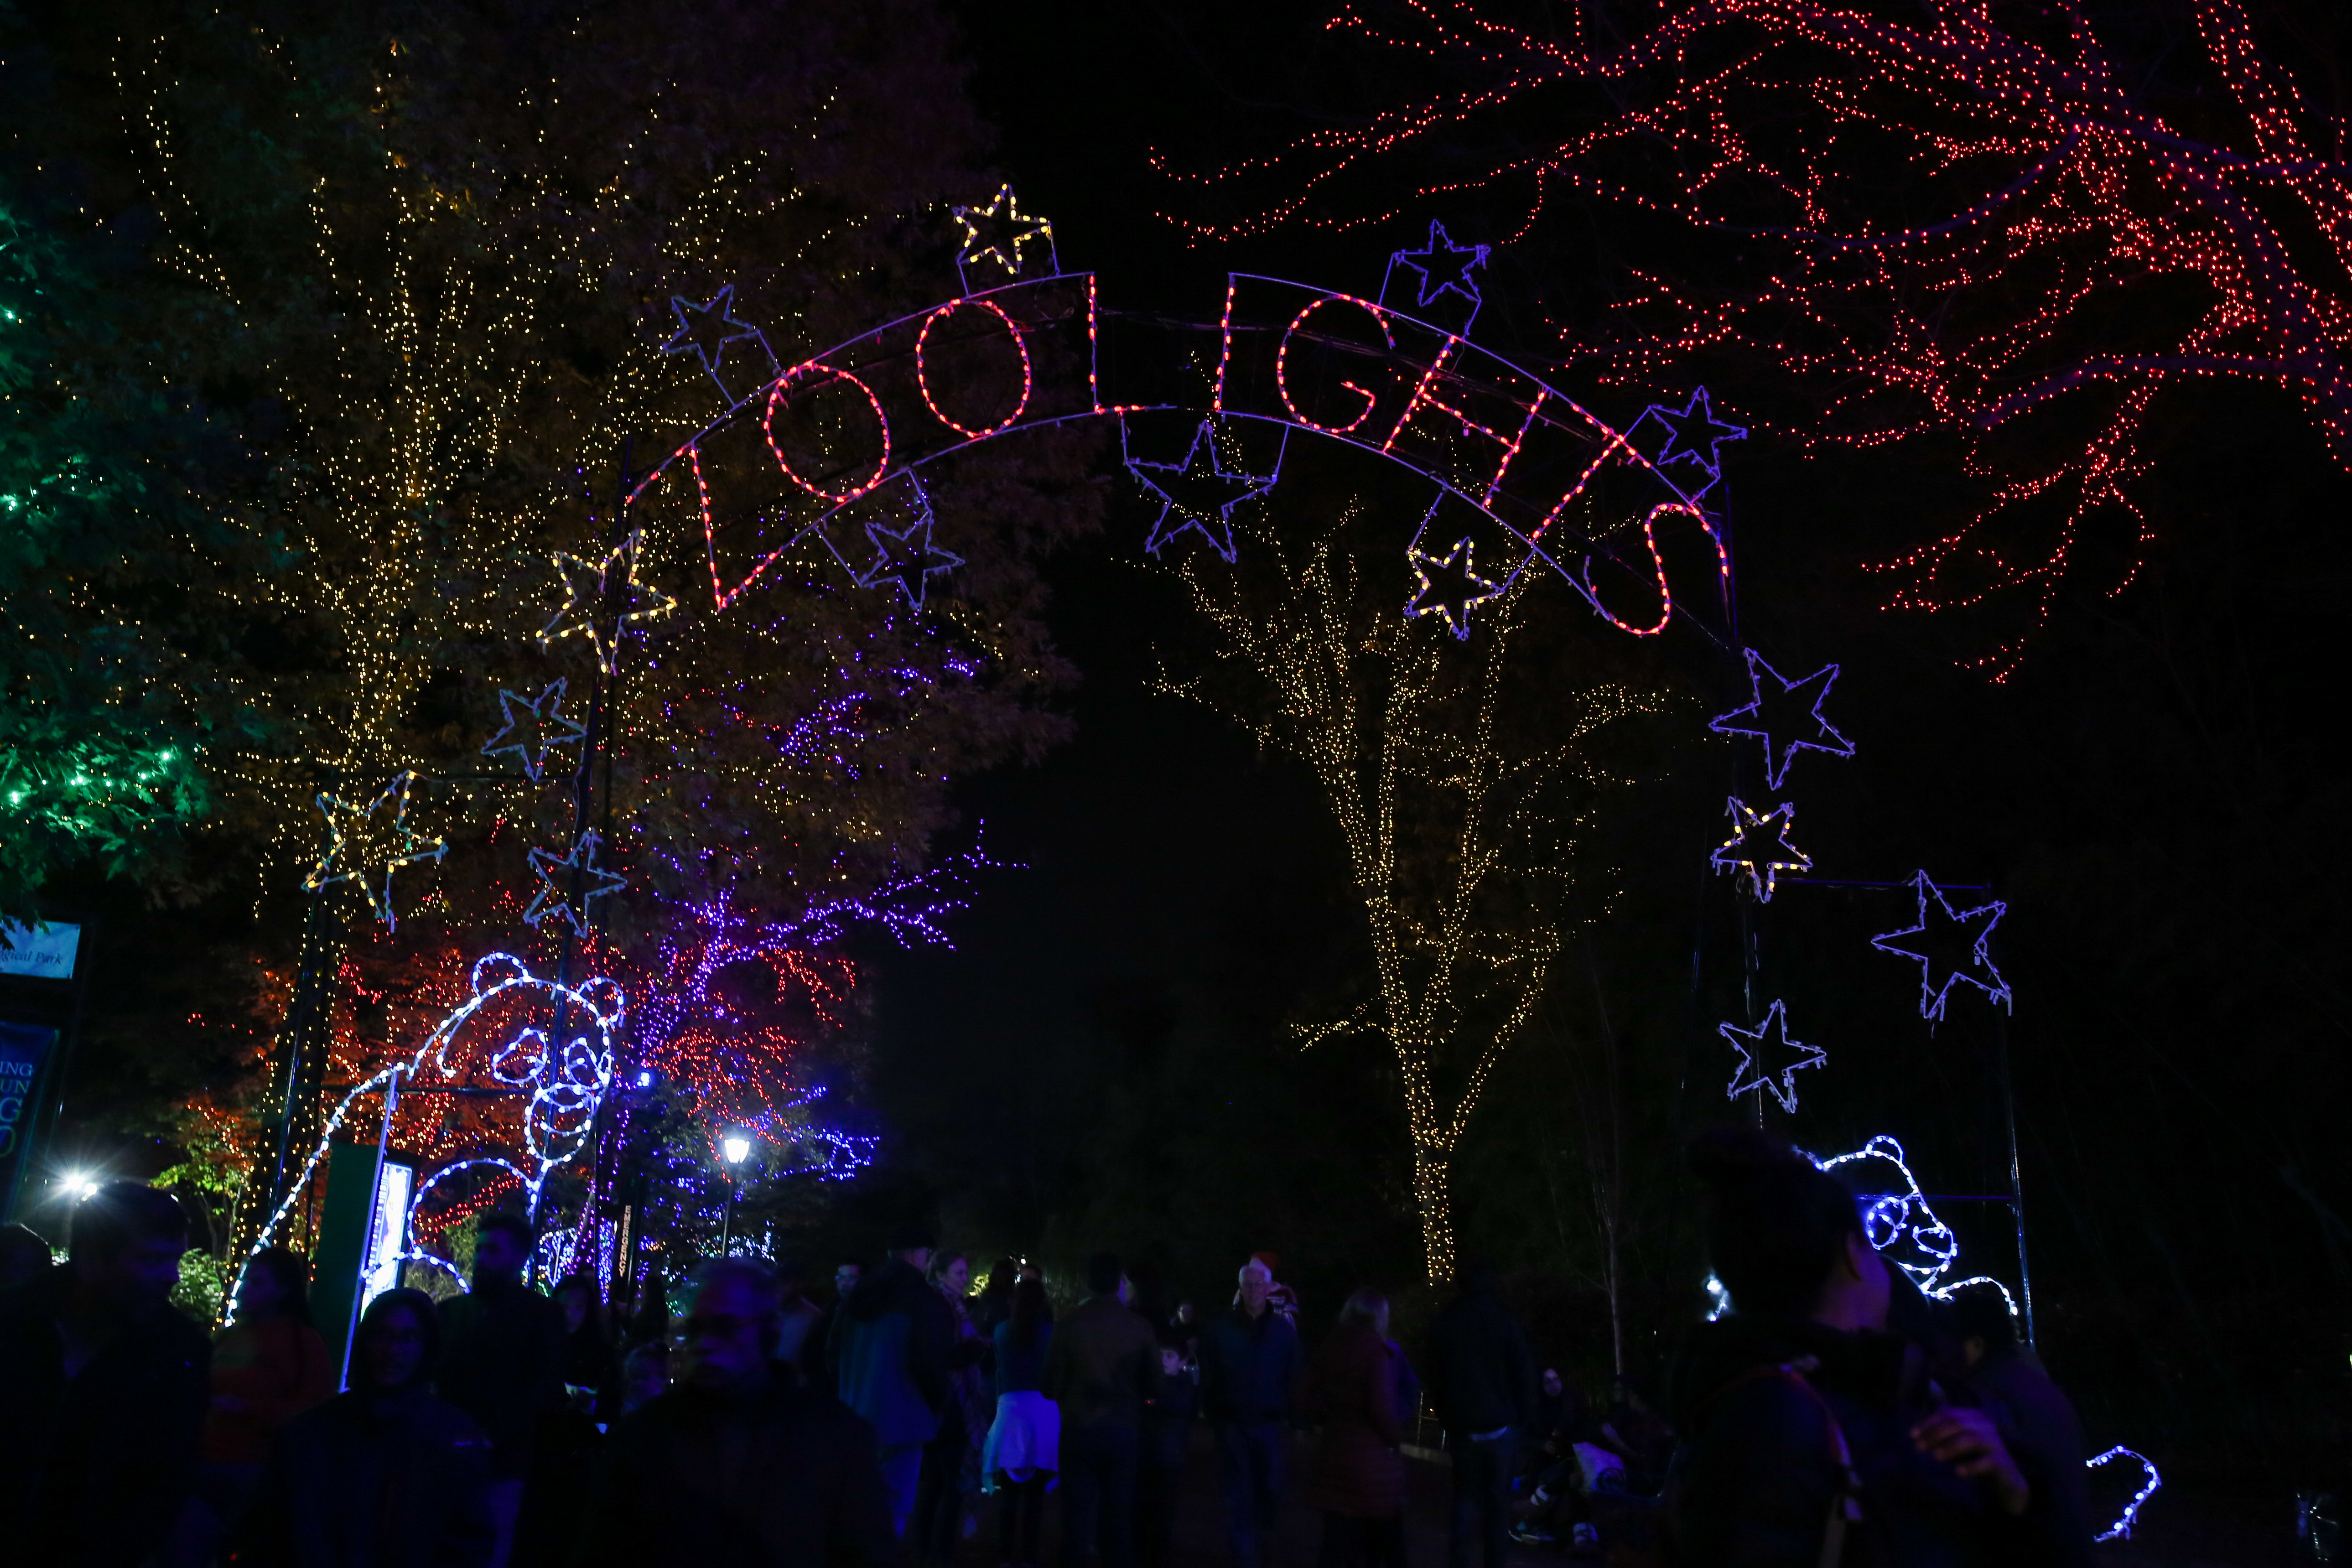 More than half a million LED lights are now blinking and twinkling at the Smithsonian's National Zoo. ZooLights, an annual holiday event,  allows visitors to experience the zoo after hours and experience snow-less tubing, kid-friendly train rides and pretty displays - all while sipping on hot chocolate. ZooLights will remain open until January 1. (Amanda Andrade-Rhoades/DC Refined)